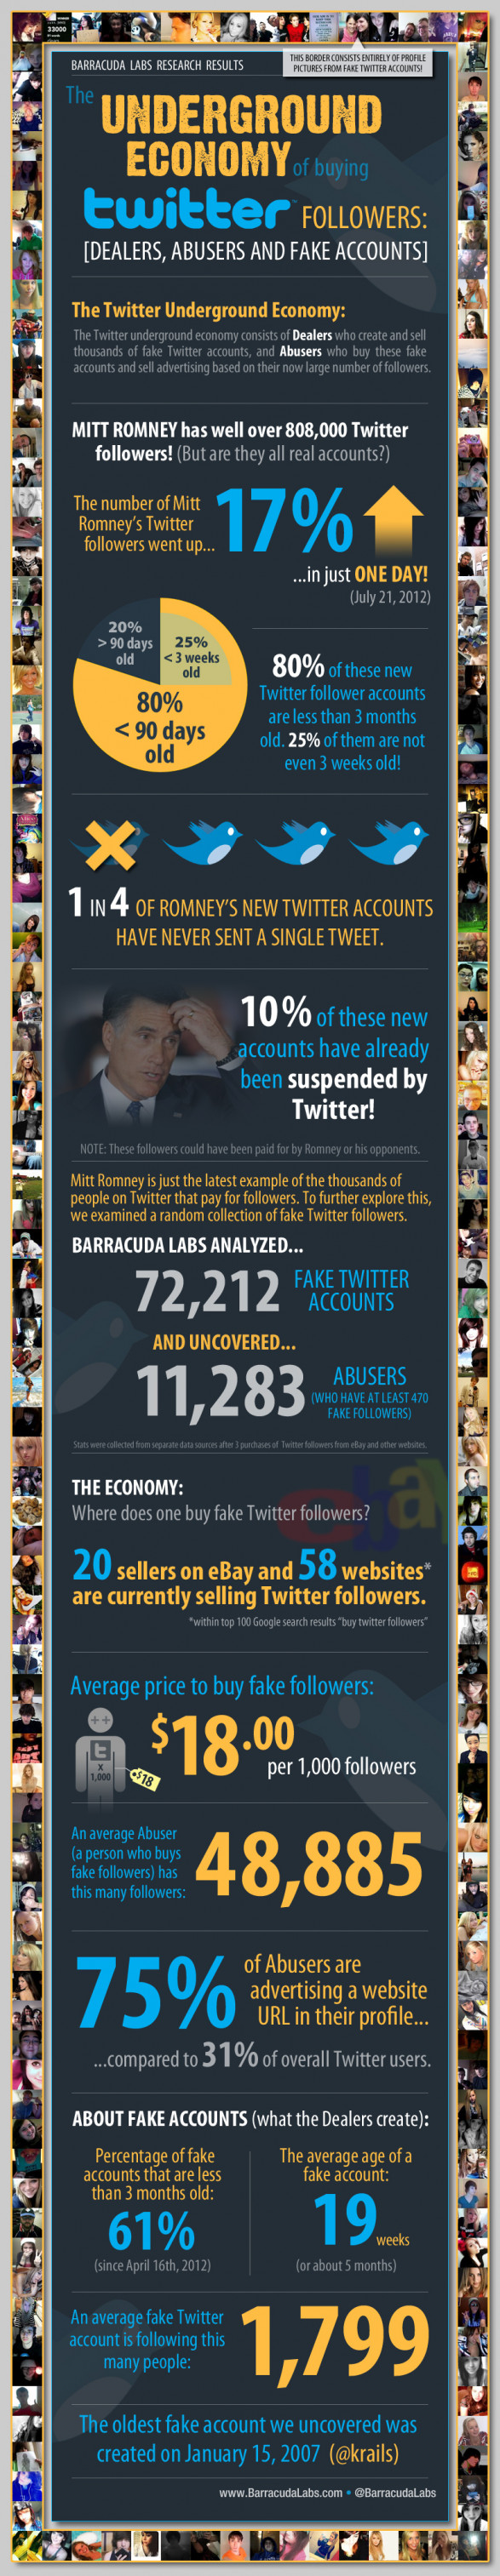 The Underground Twitter Economy: Buying And Selling Followers